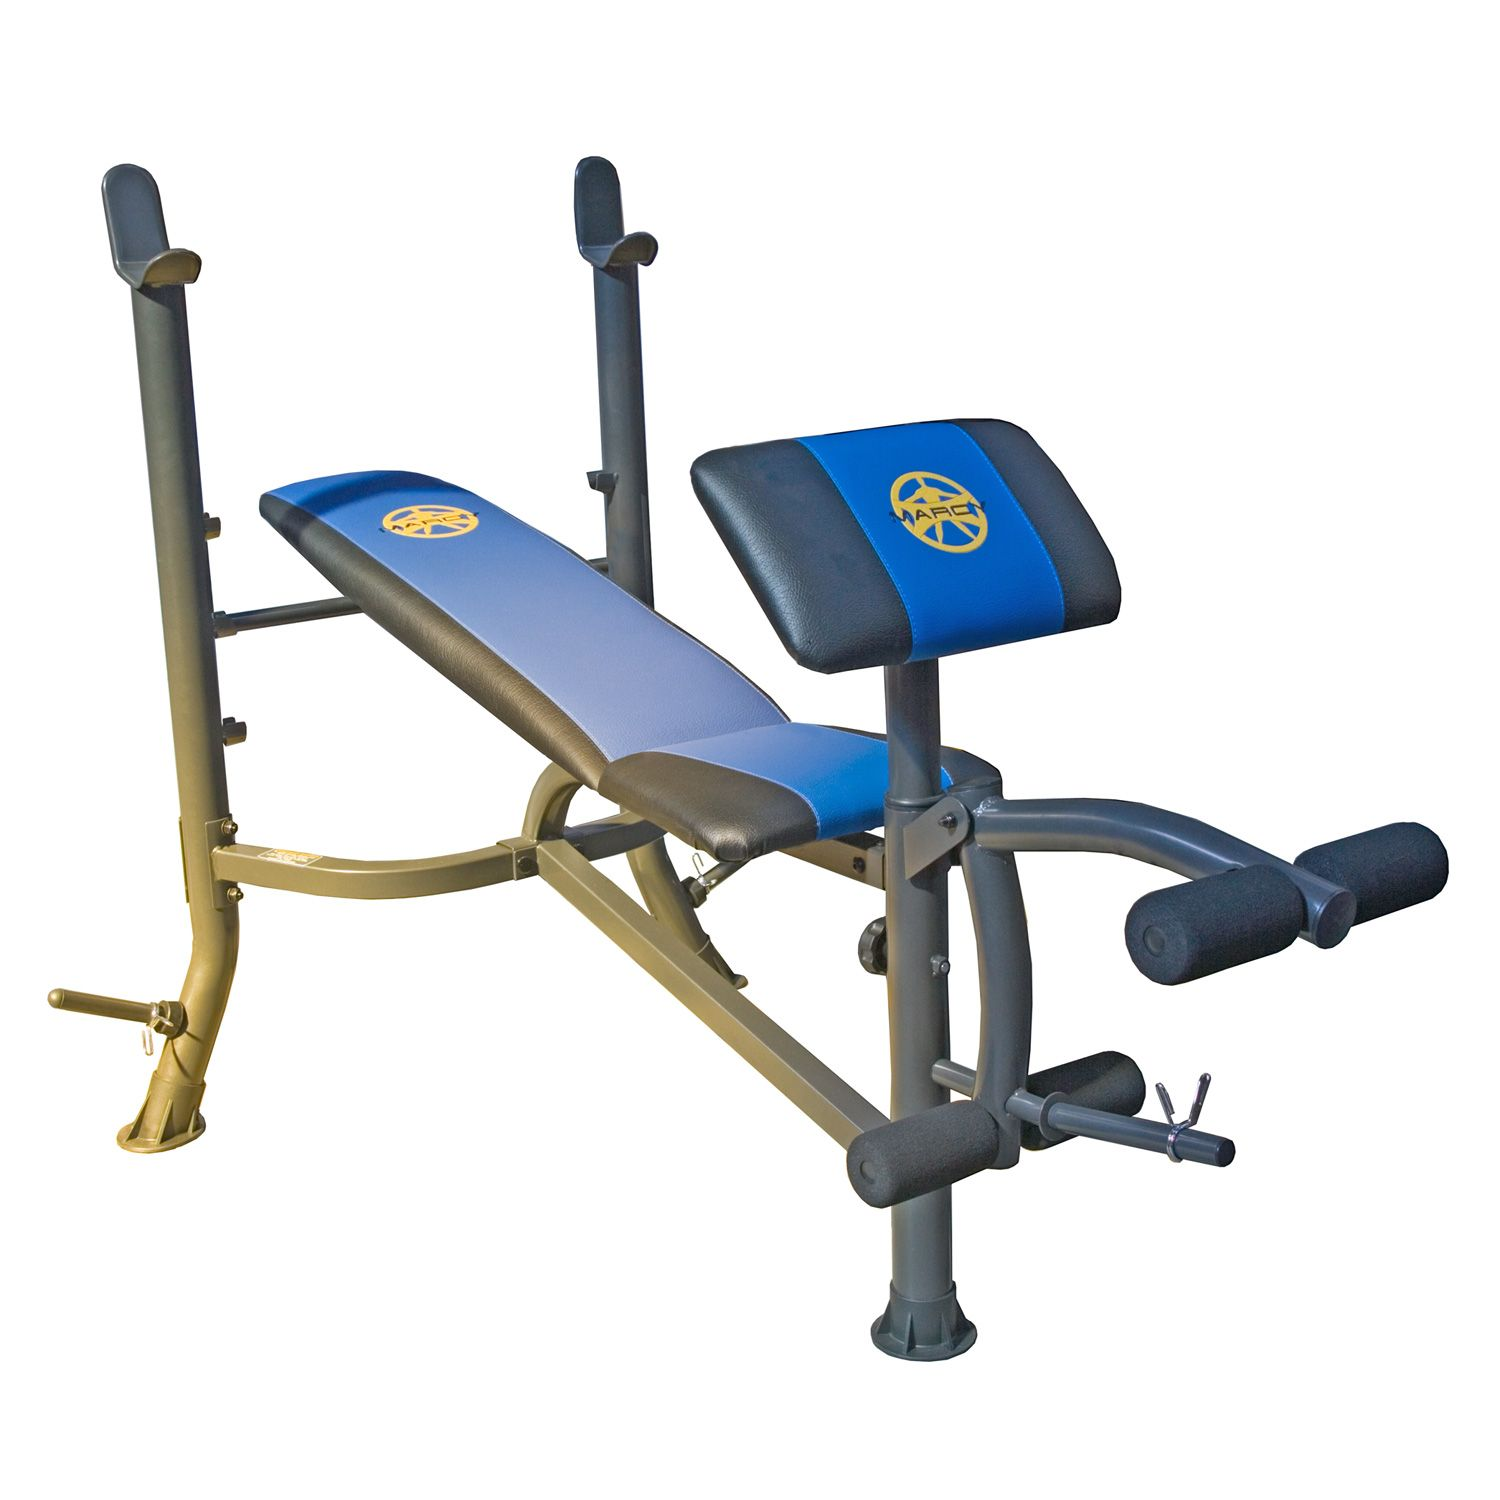 Marcy Wm367 Weight Bench Ebay: bench weights